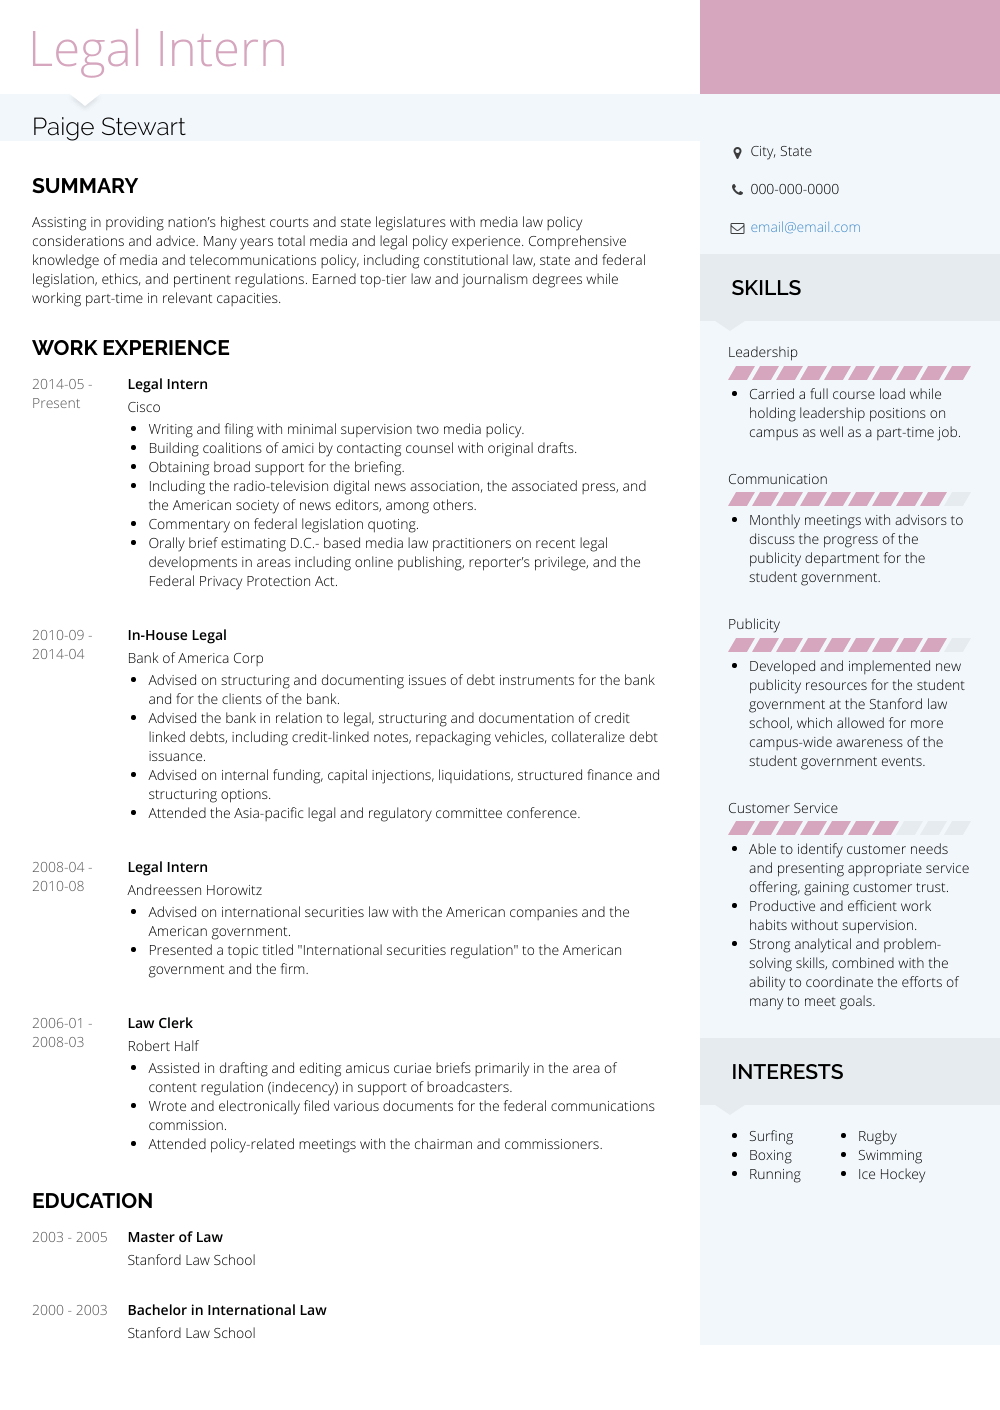 Legal Intern Resume Samples & Templates VisualCV